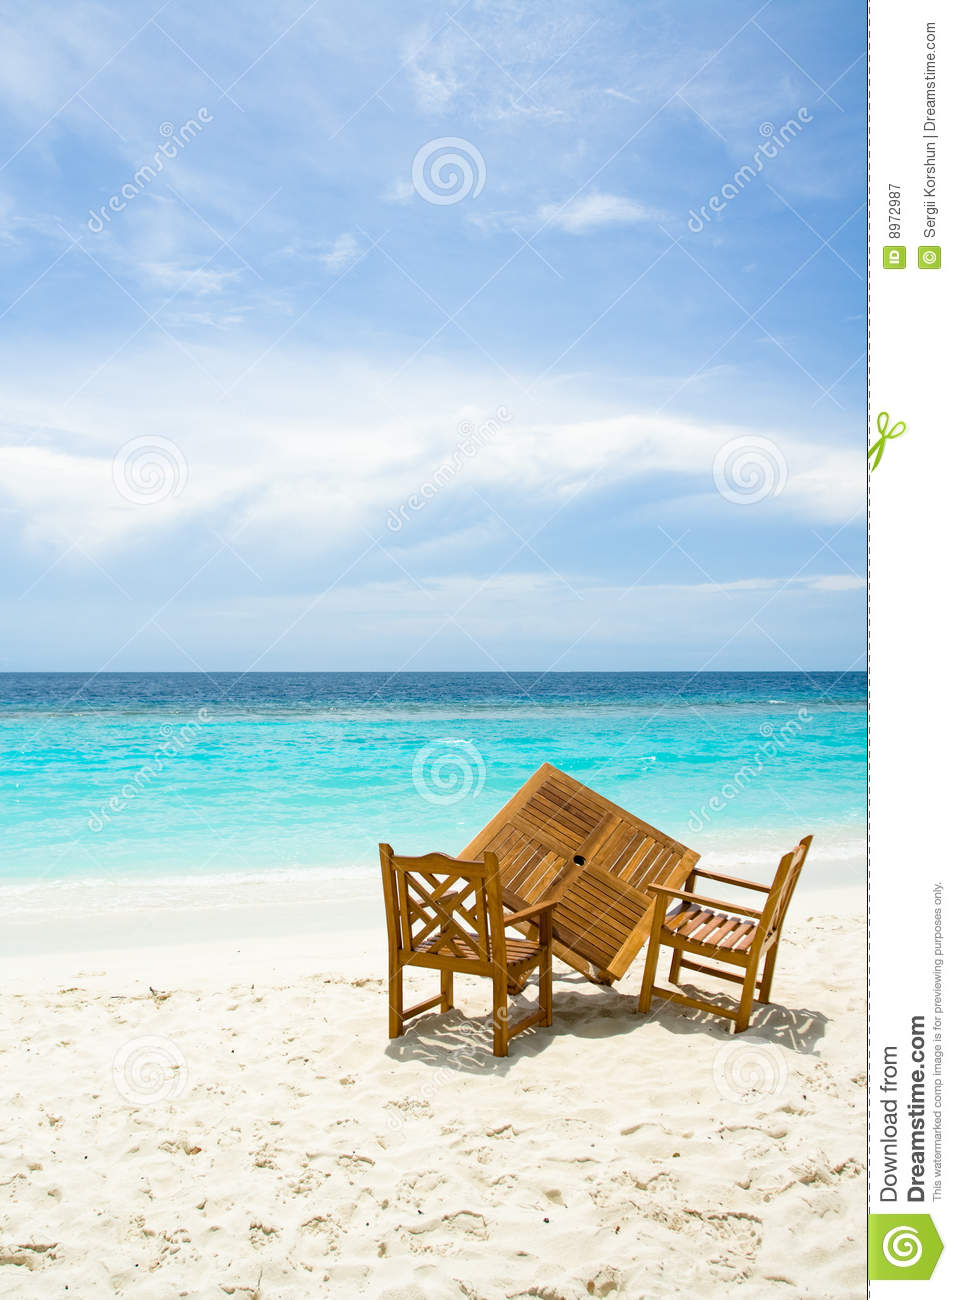 wooden beach chairs plans wheelchair jeep free table for two on the with ocean view stock image - of blue, leisure: 8972987